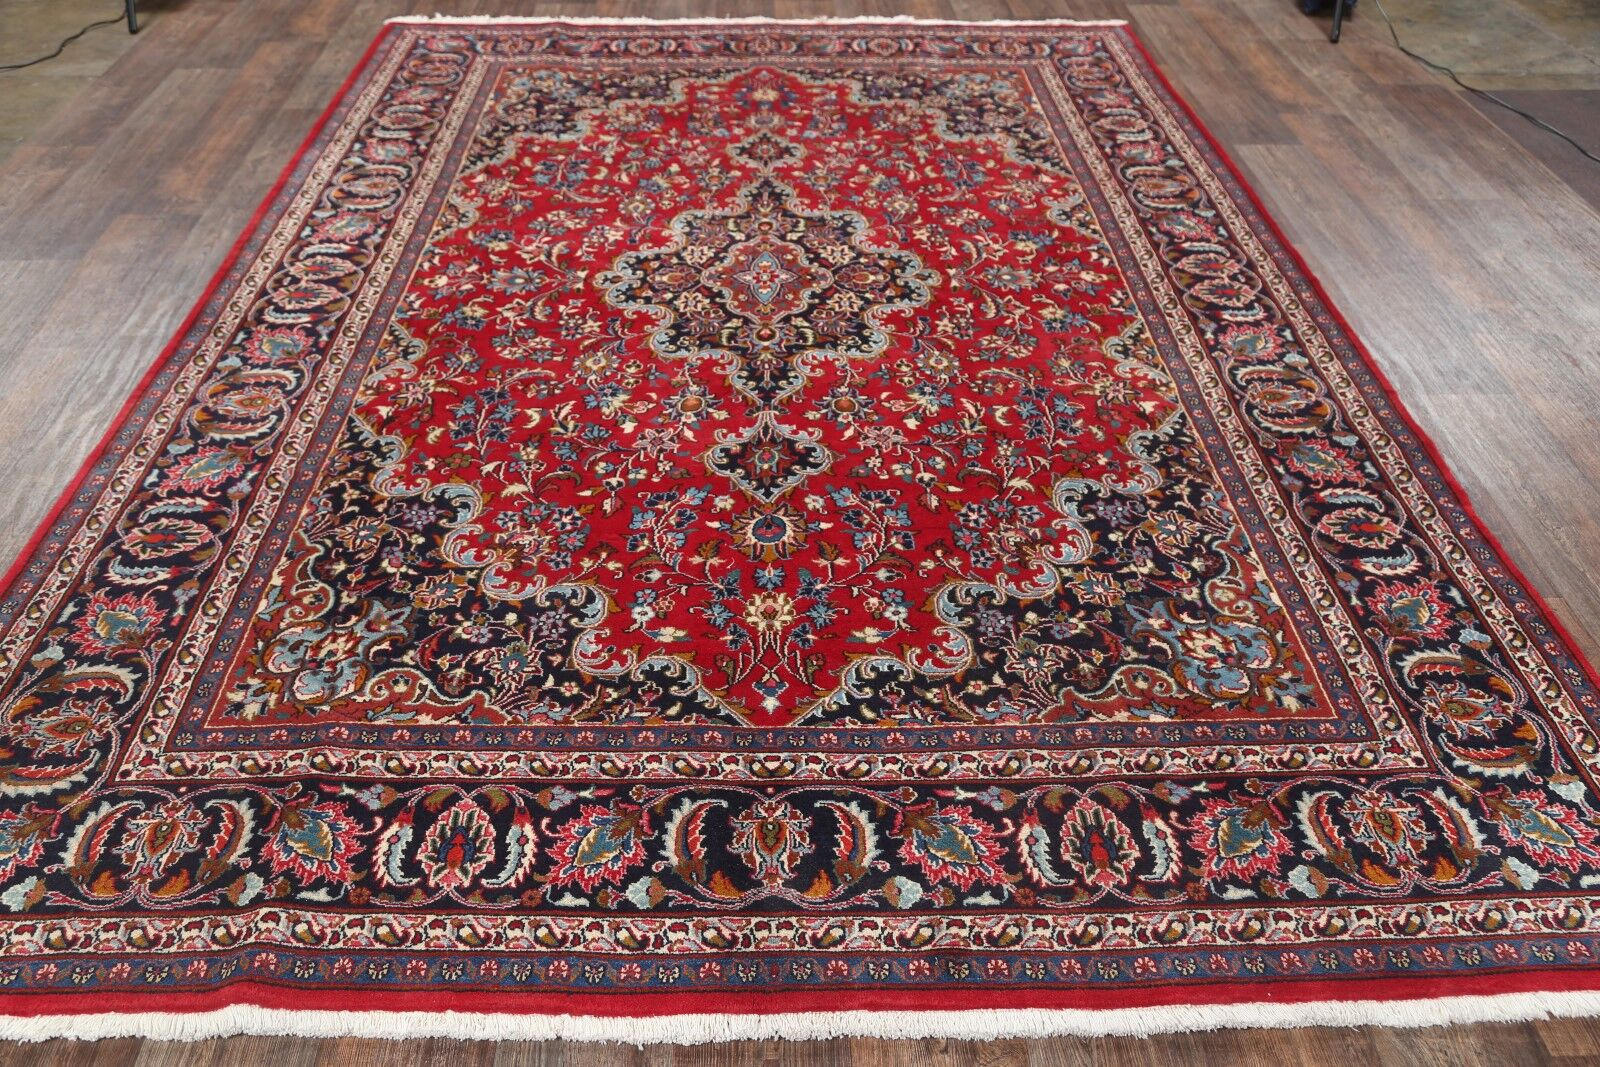 One-of-a-Kind Original Mashad Persian Hand-Knotted 7'11